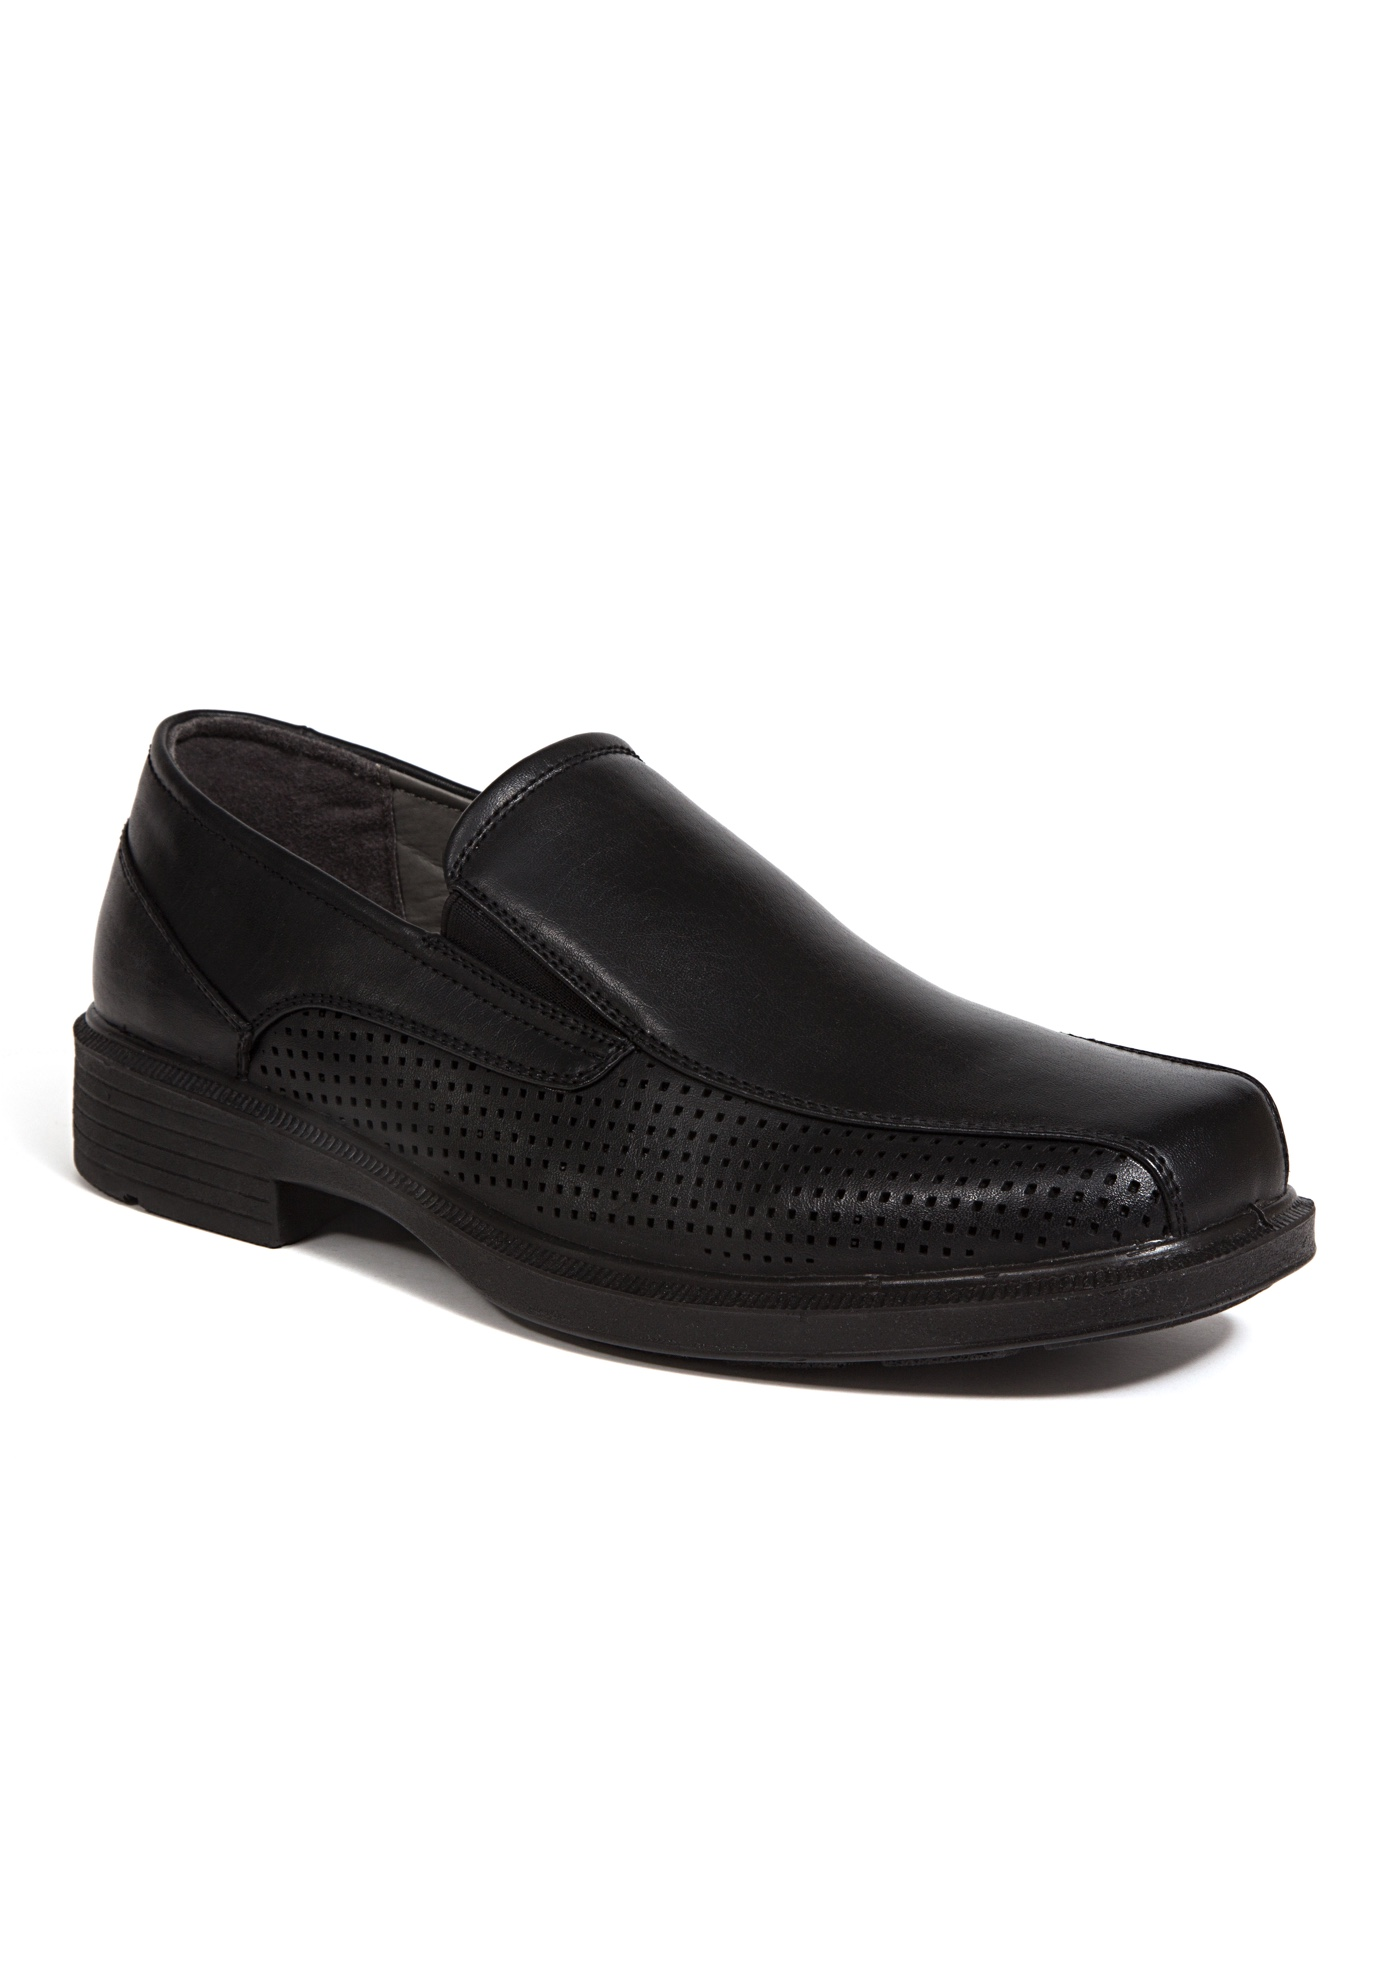 Deer Stags® Fortgreene Lightweight Cushioned Slip-On Bike Toe Loafers,